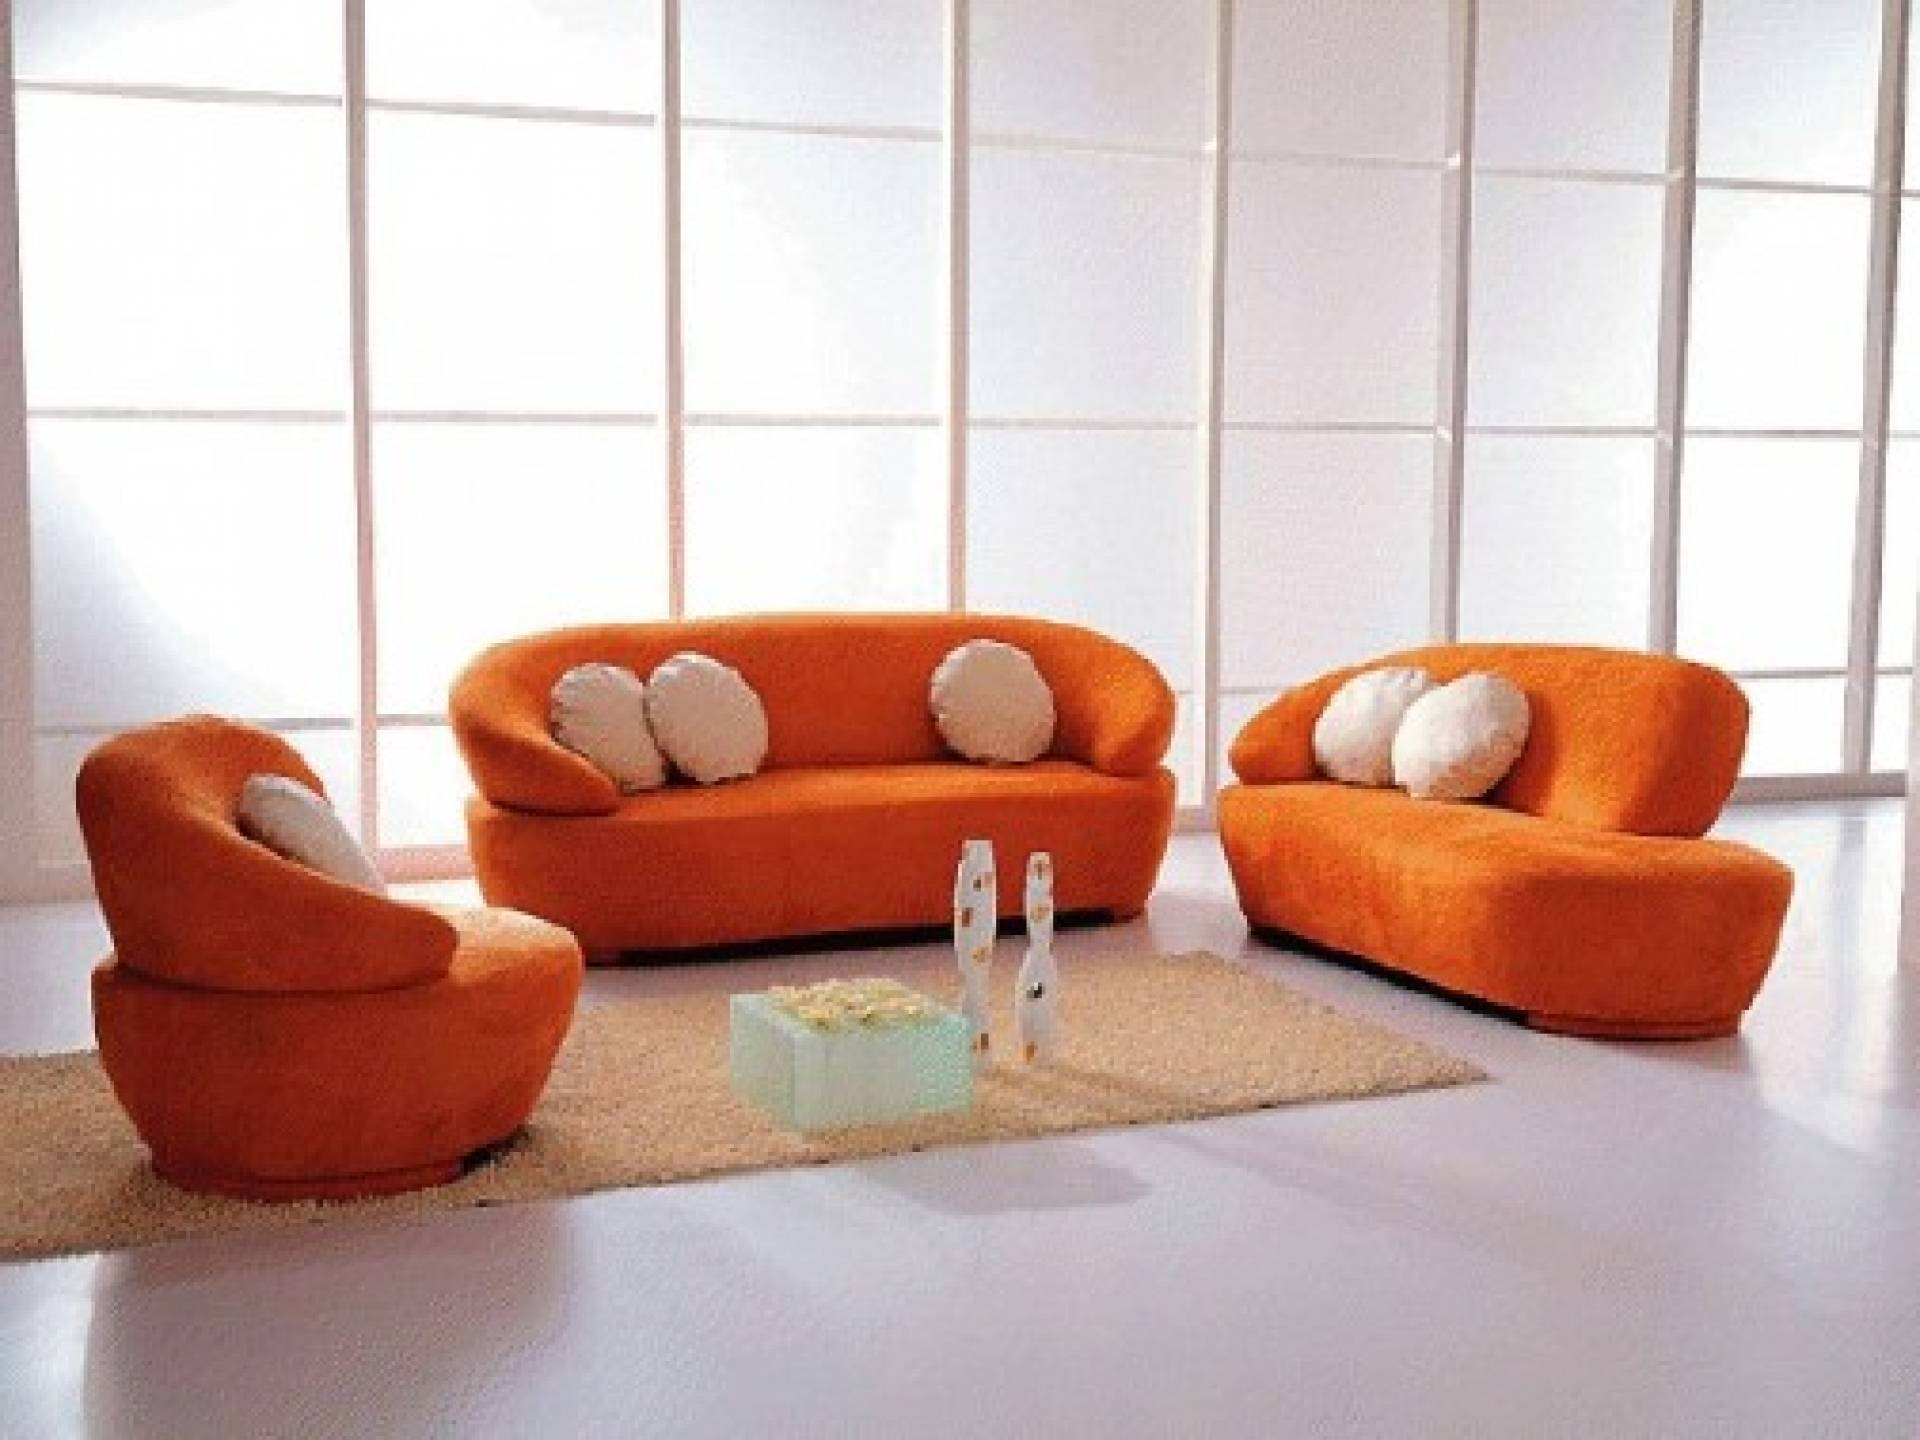 Orange Sofa Interior Design Orange Sofa. Orange Sofa Interior within Orange Modern Sofas (Image 15 of 15)